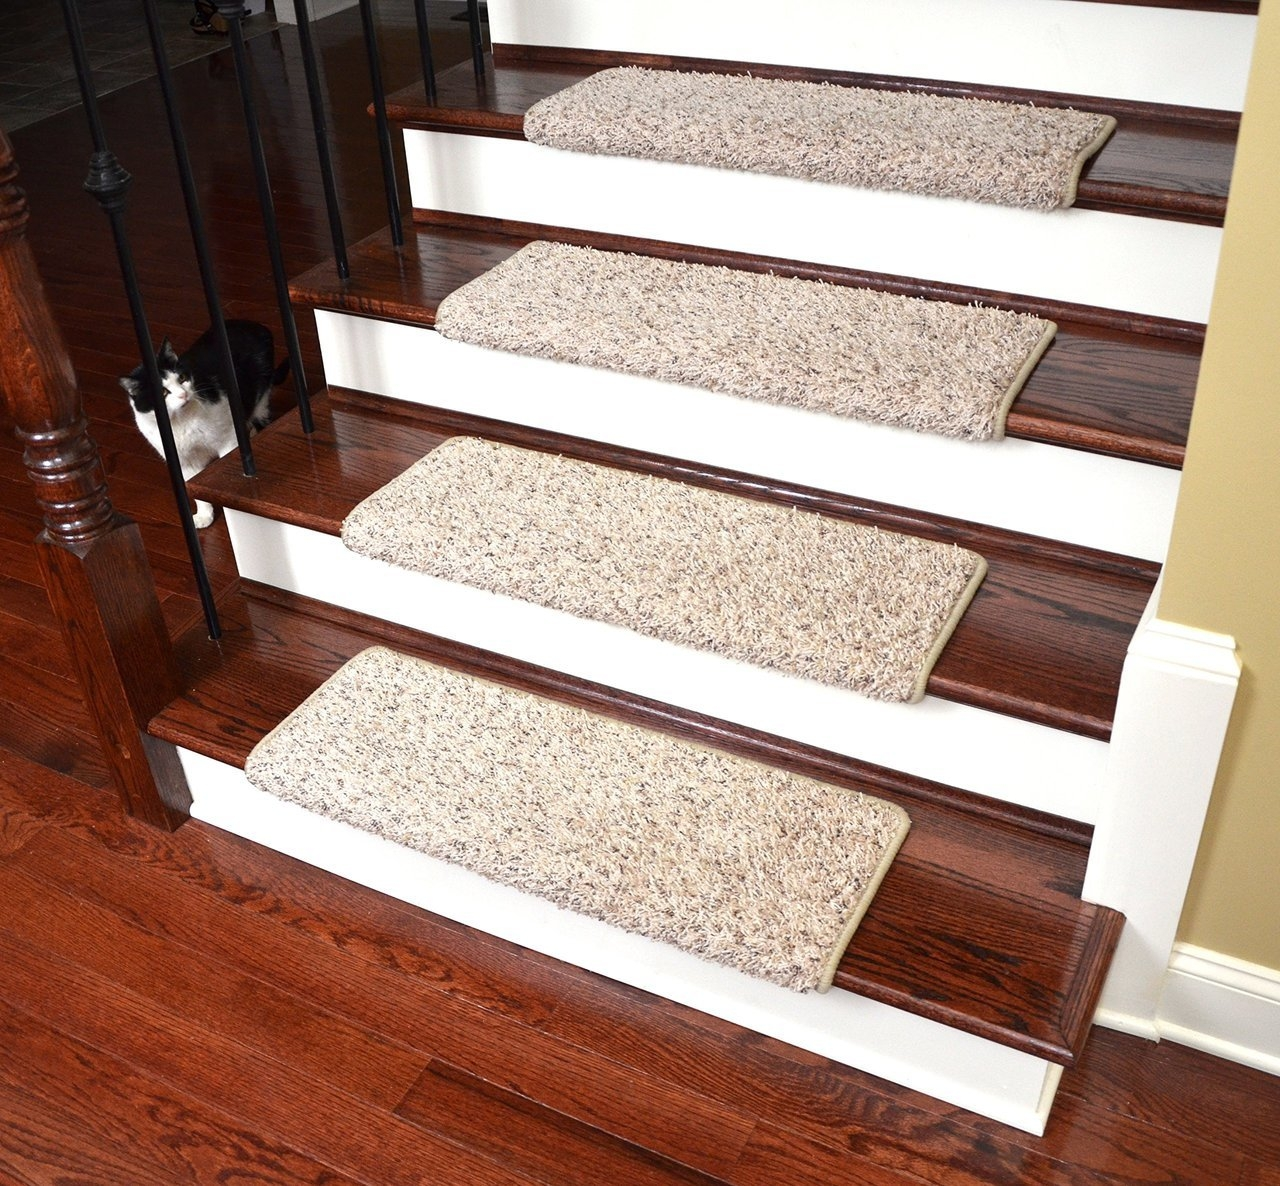 Terrific Stair Tread Rugs Canada 110 Stair Tread Rugs Canada Inside Adhesive Carpet Stair Treads (Image 14 of 15)